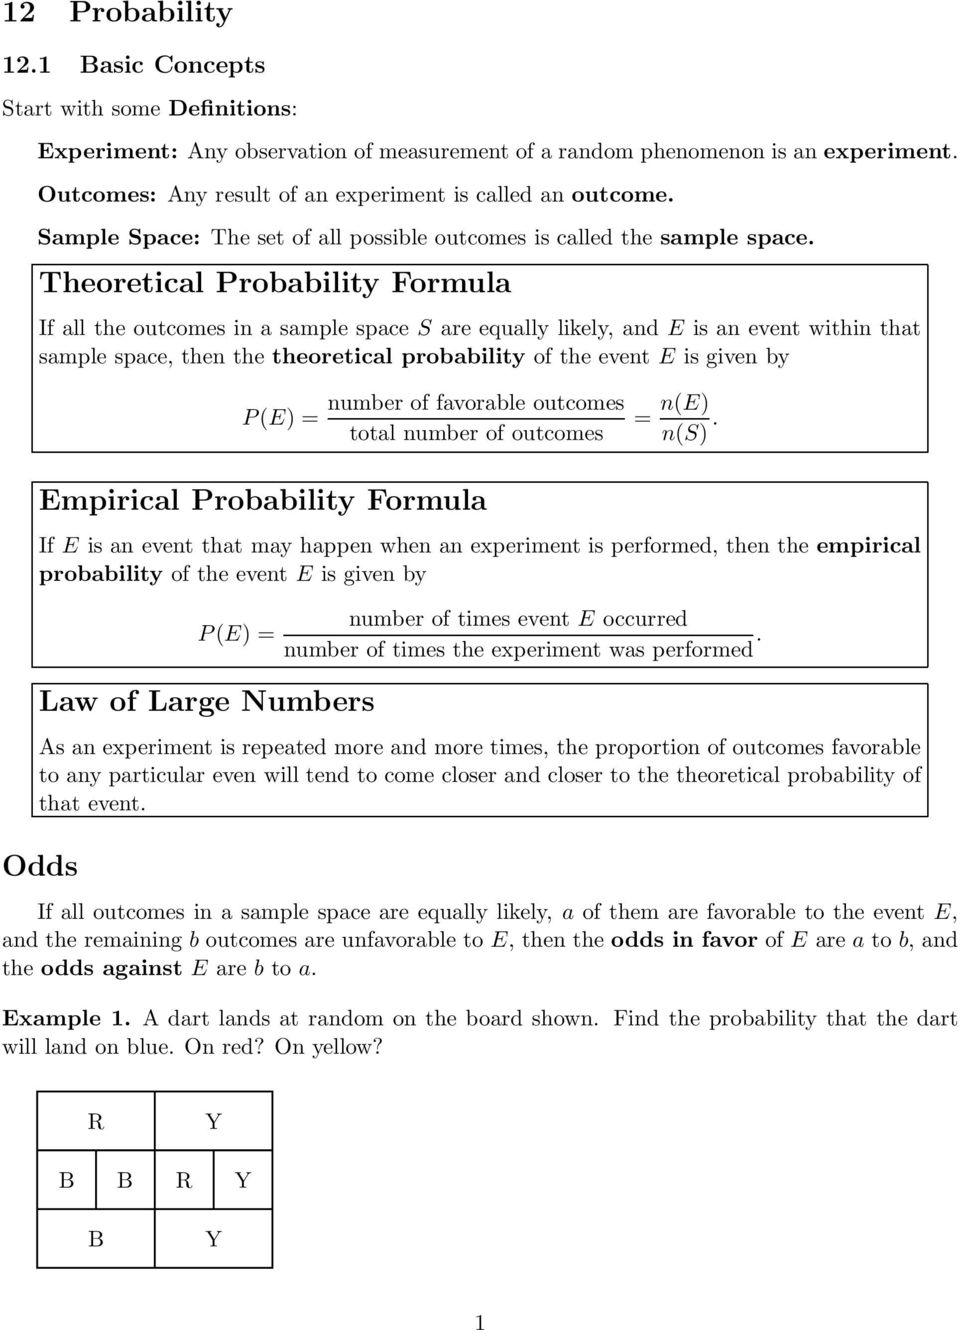 Theoretical Probability Formula If all the outcomes in a sample space S are equally likely, and E is an event within that sample space, then the theoretical probability of the event E is given by P